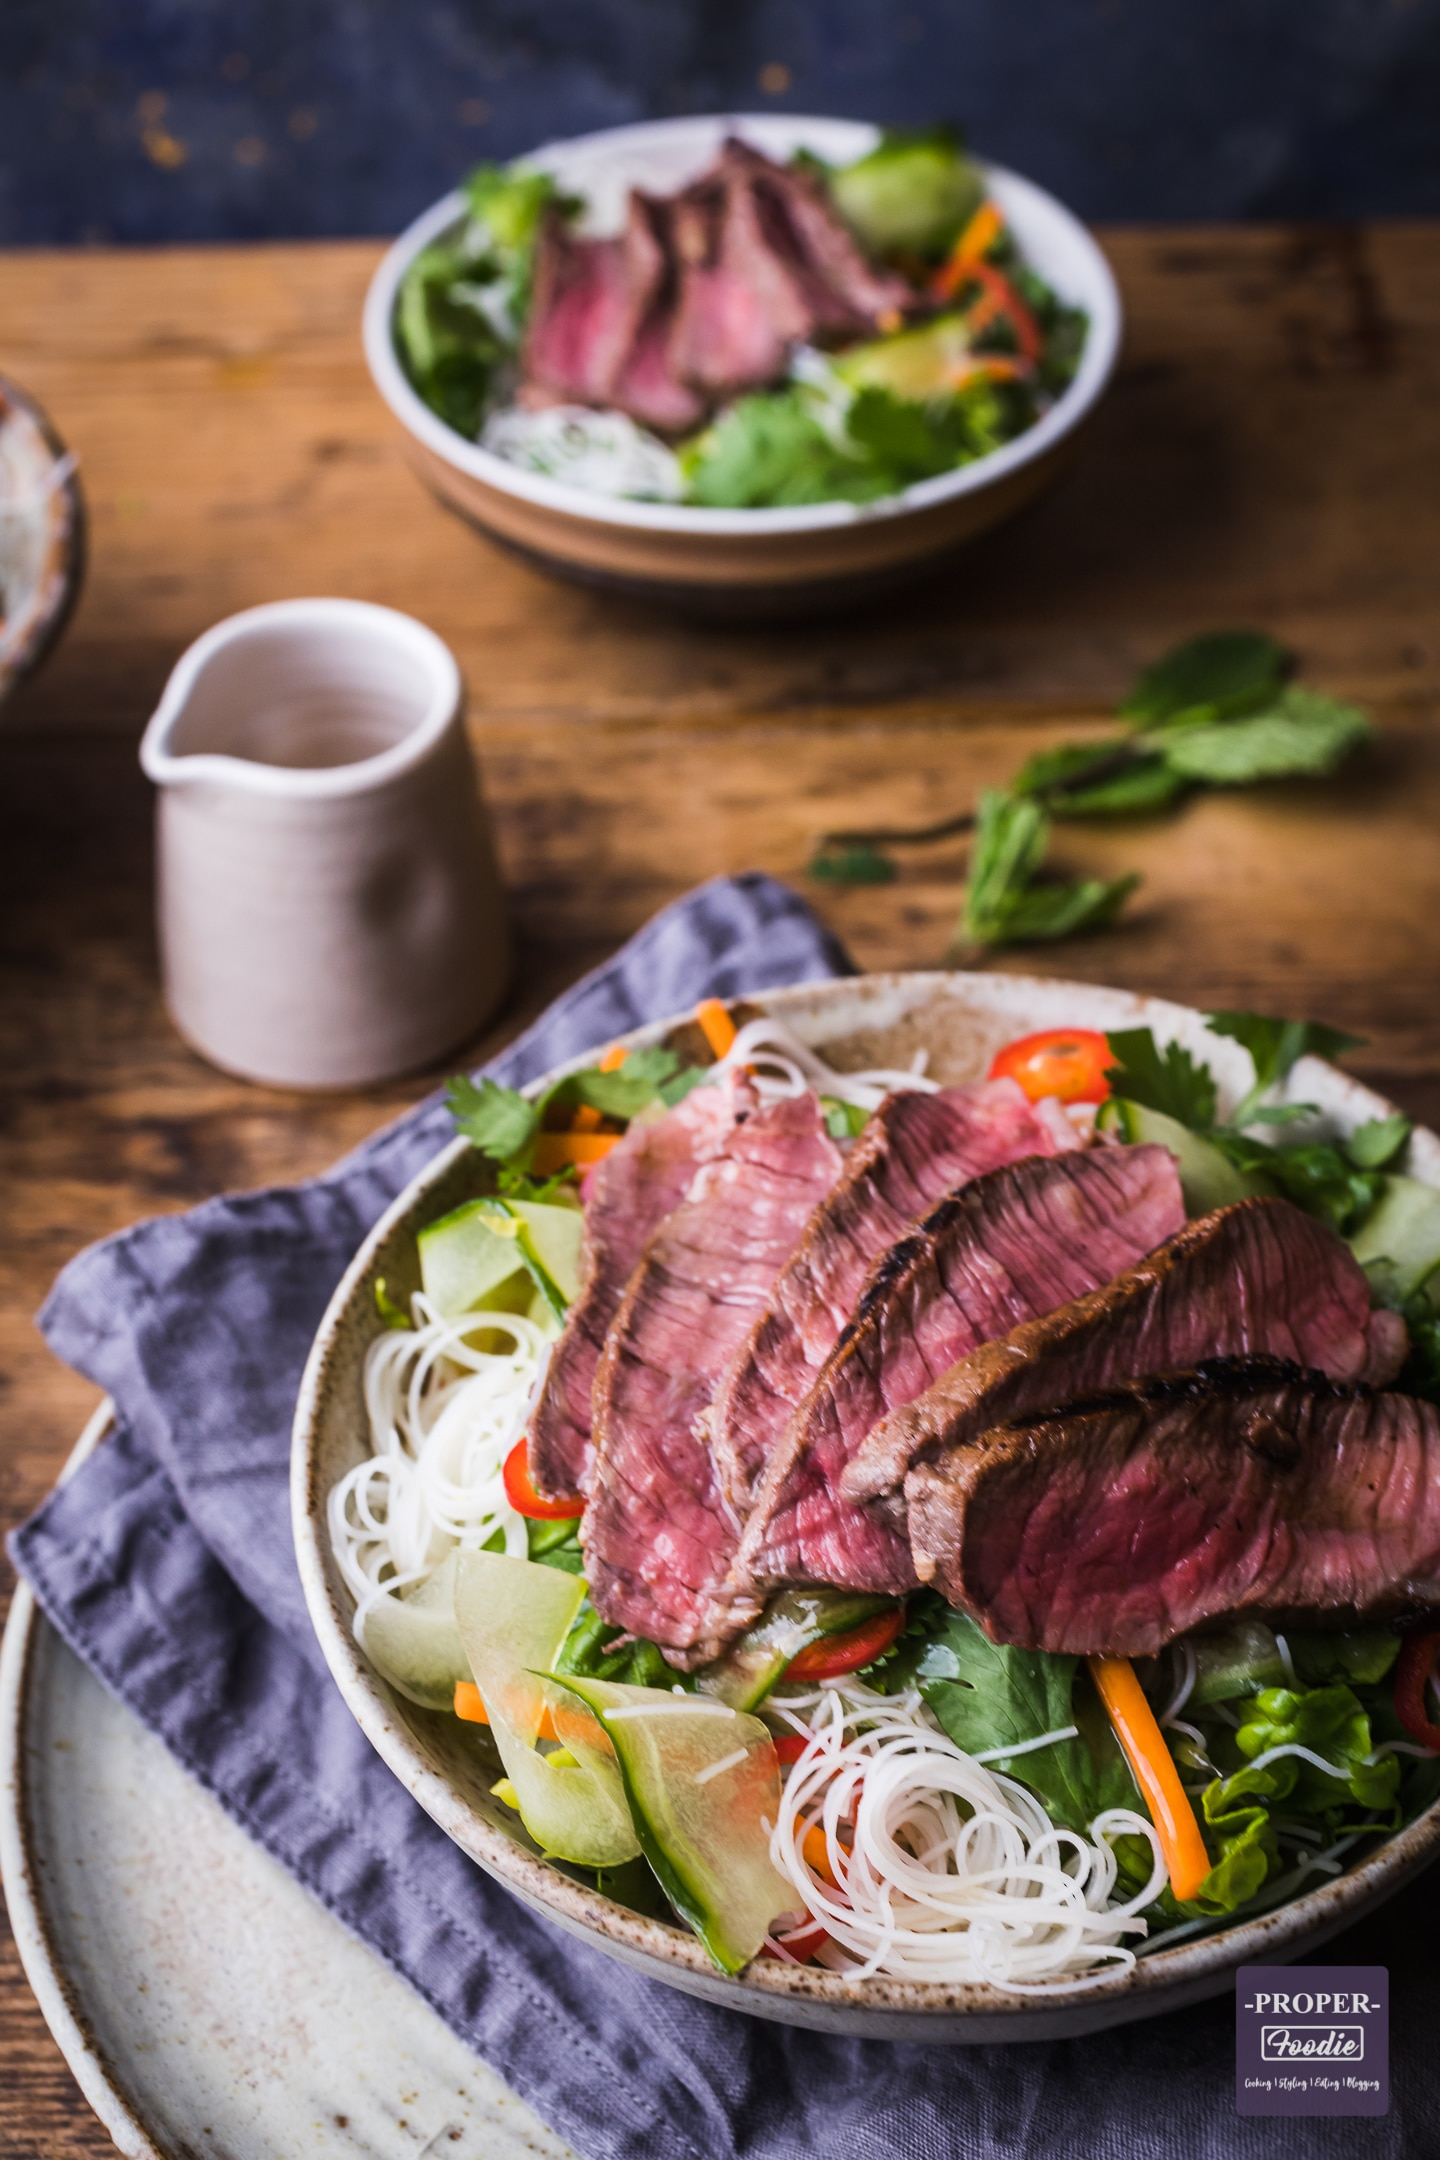 Slices of rare steak over rice noodles and salad in a bowl